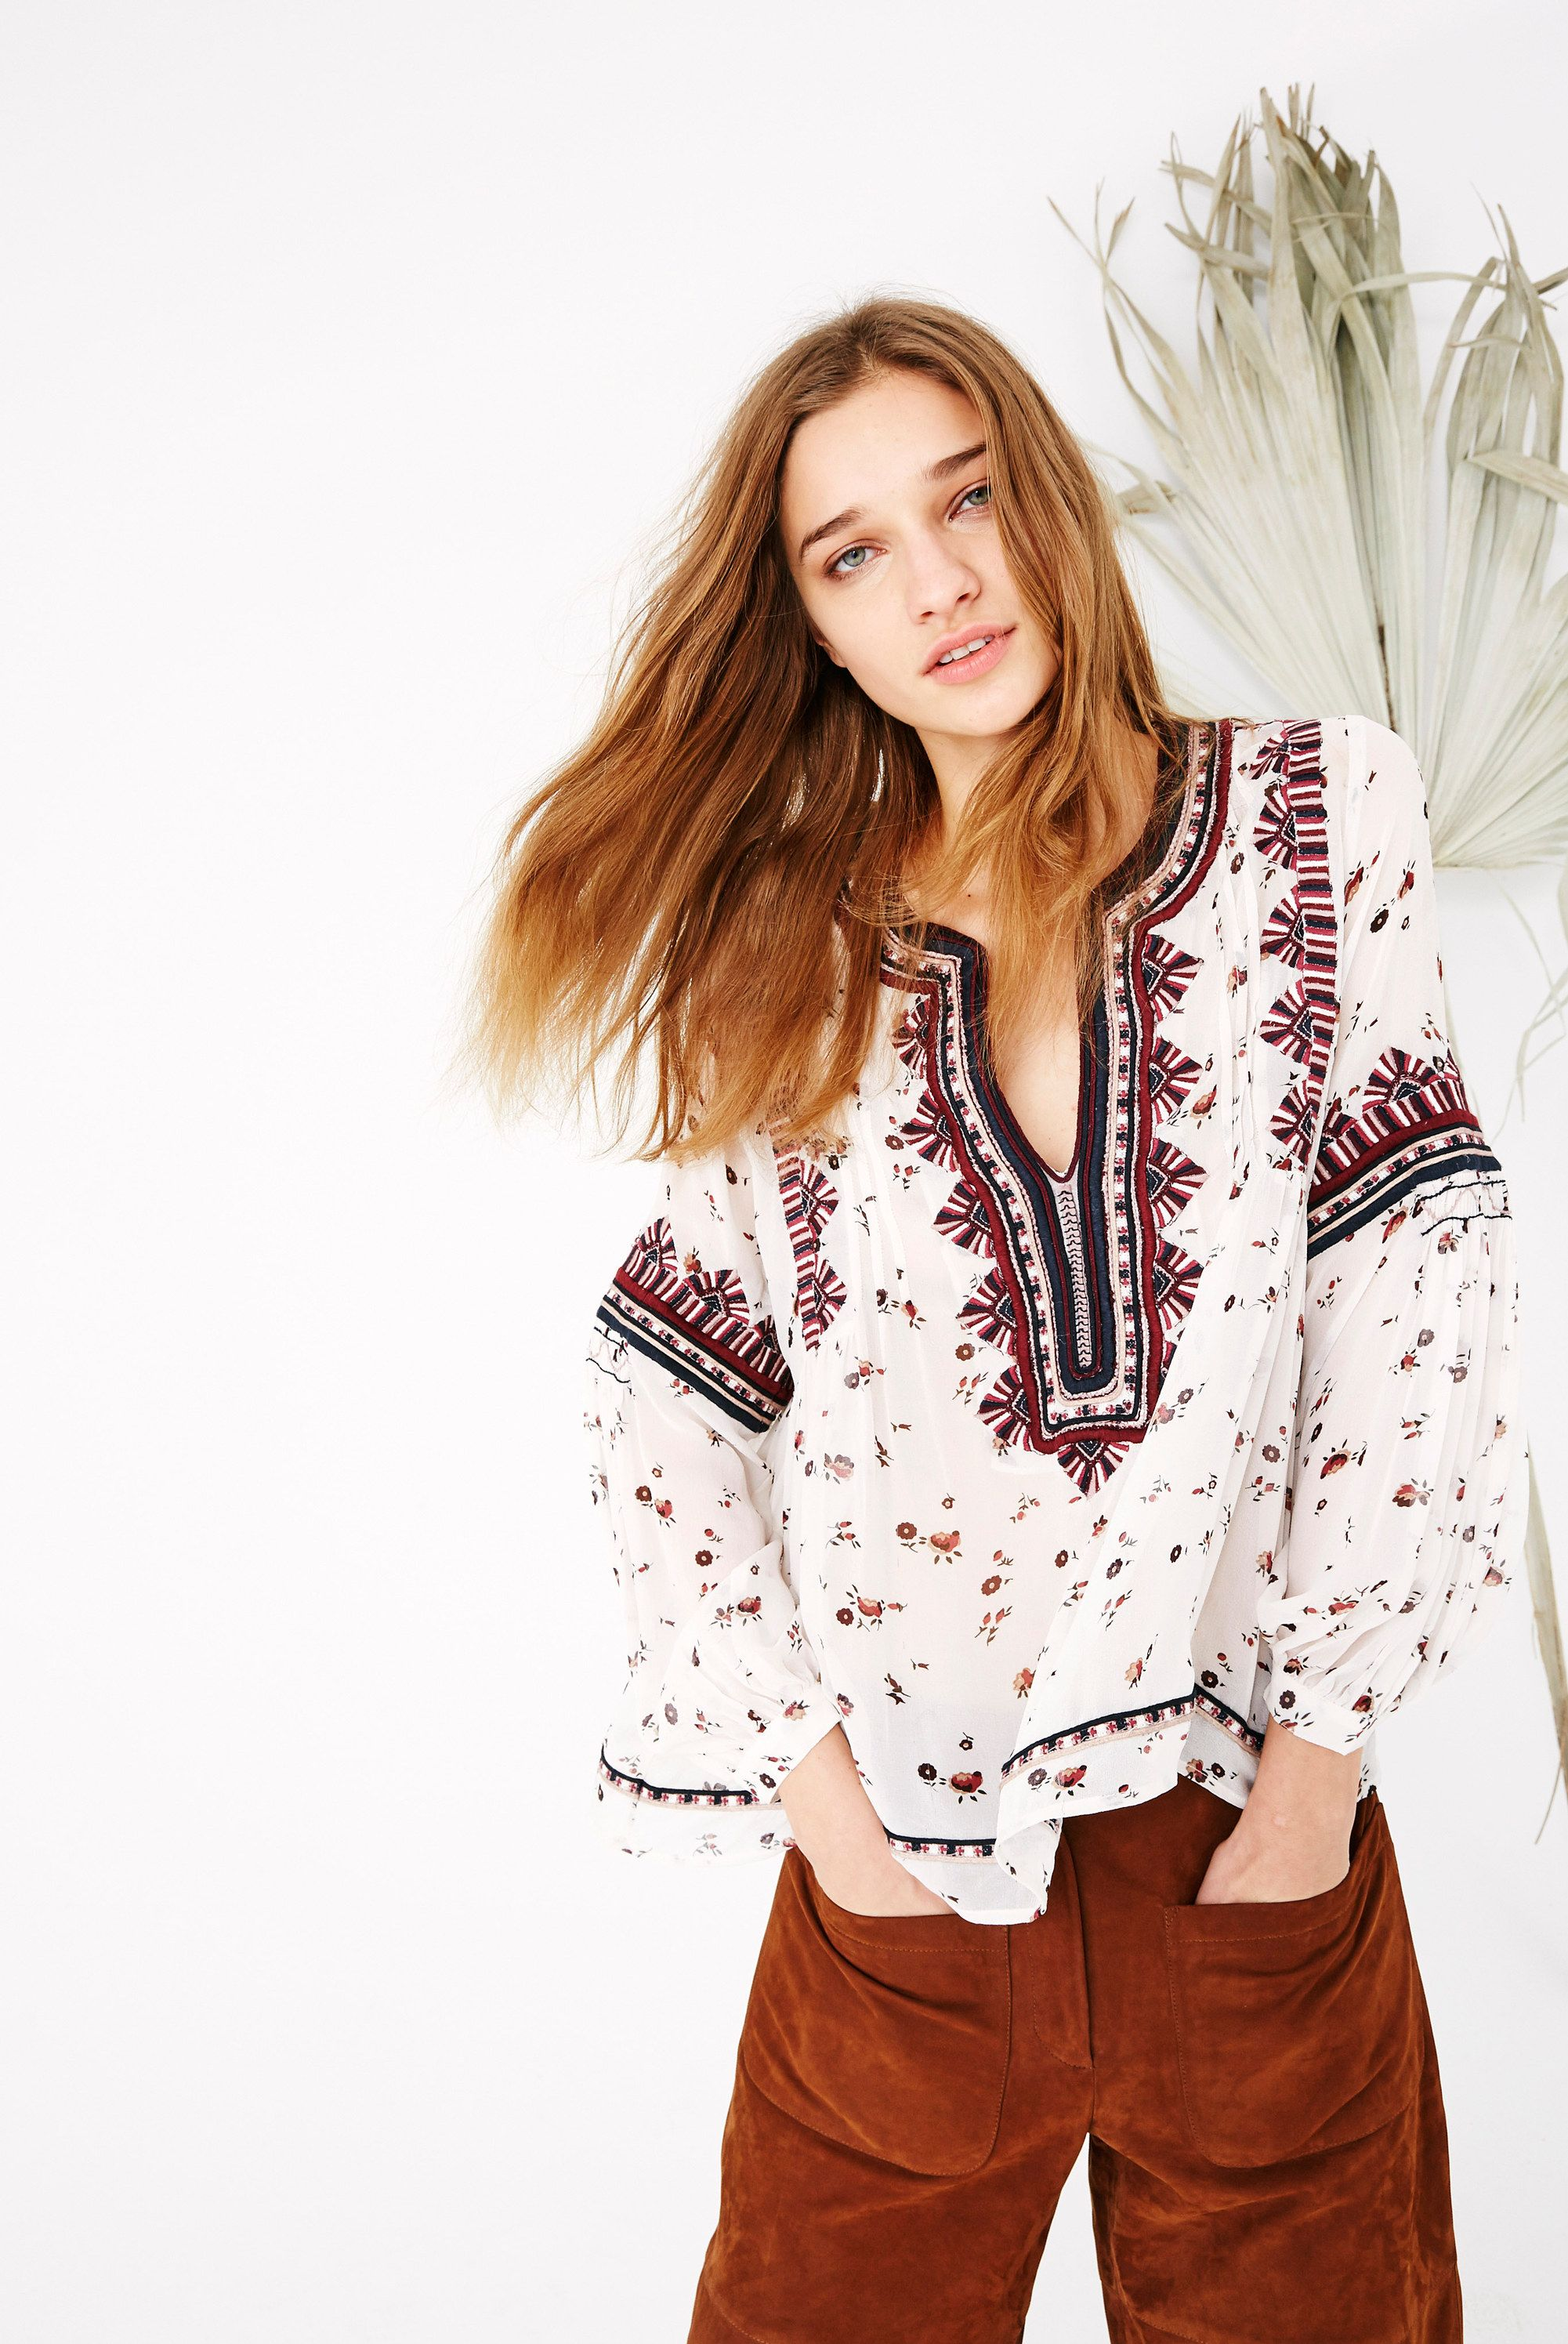 The authenticity of Ulla Johnson's global bohemian vibe truly shines through in the quality of her clothing, making her one of our favorite designers. Her clothing is certainly not easy to produce as it's literally hand carried all over the world to be hand-finished by expert artisans - the yarn